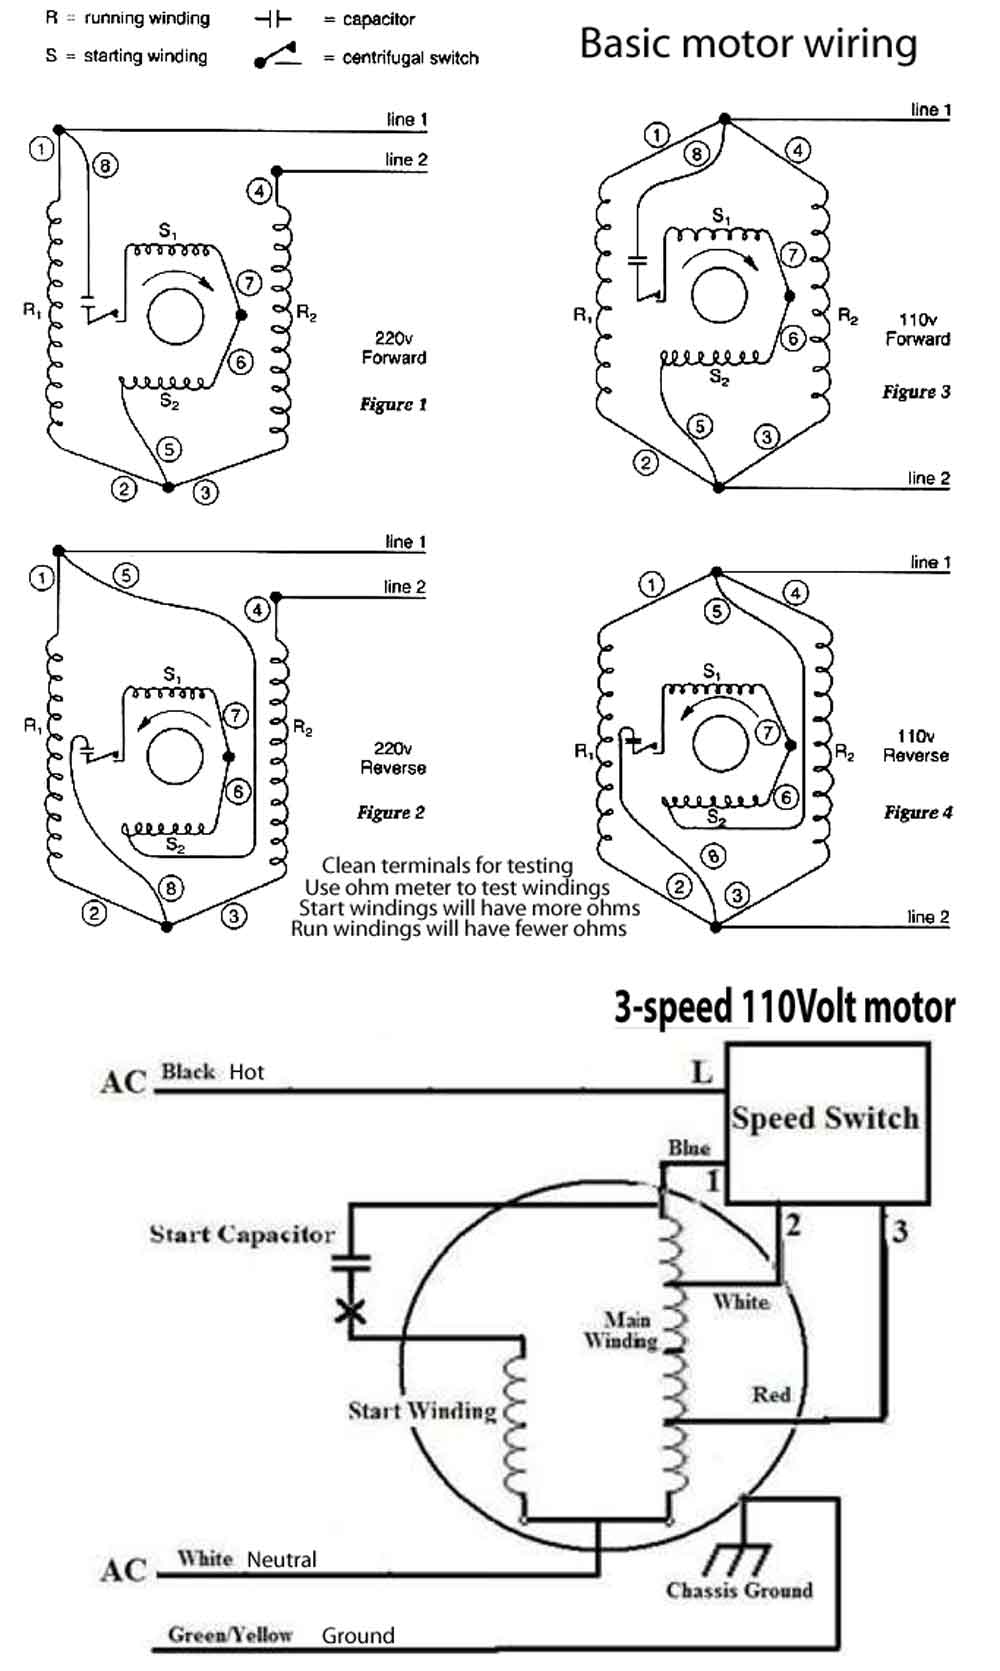 How To Wire 3 Speed Fan Switch Spdt Wiring Diagram Motor